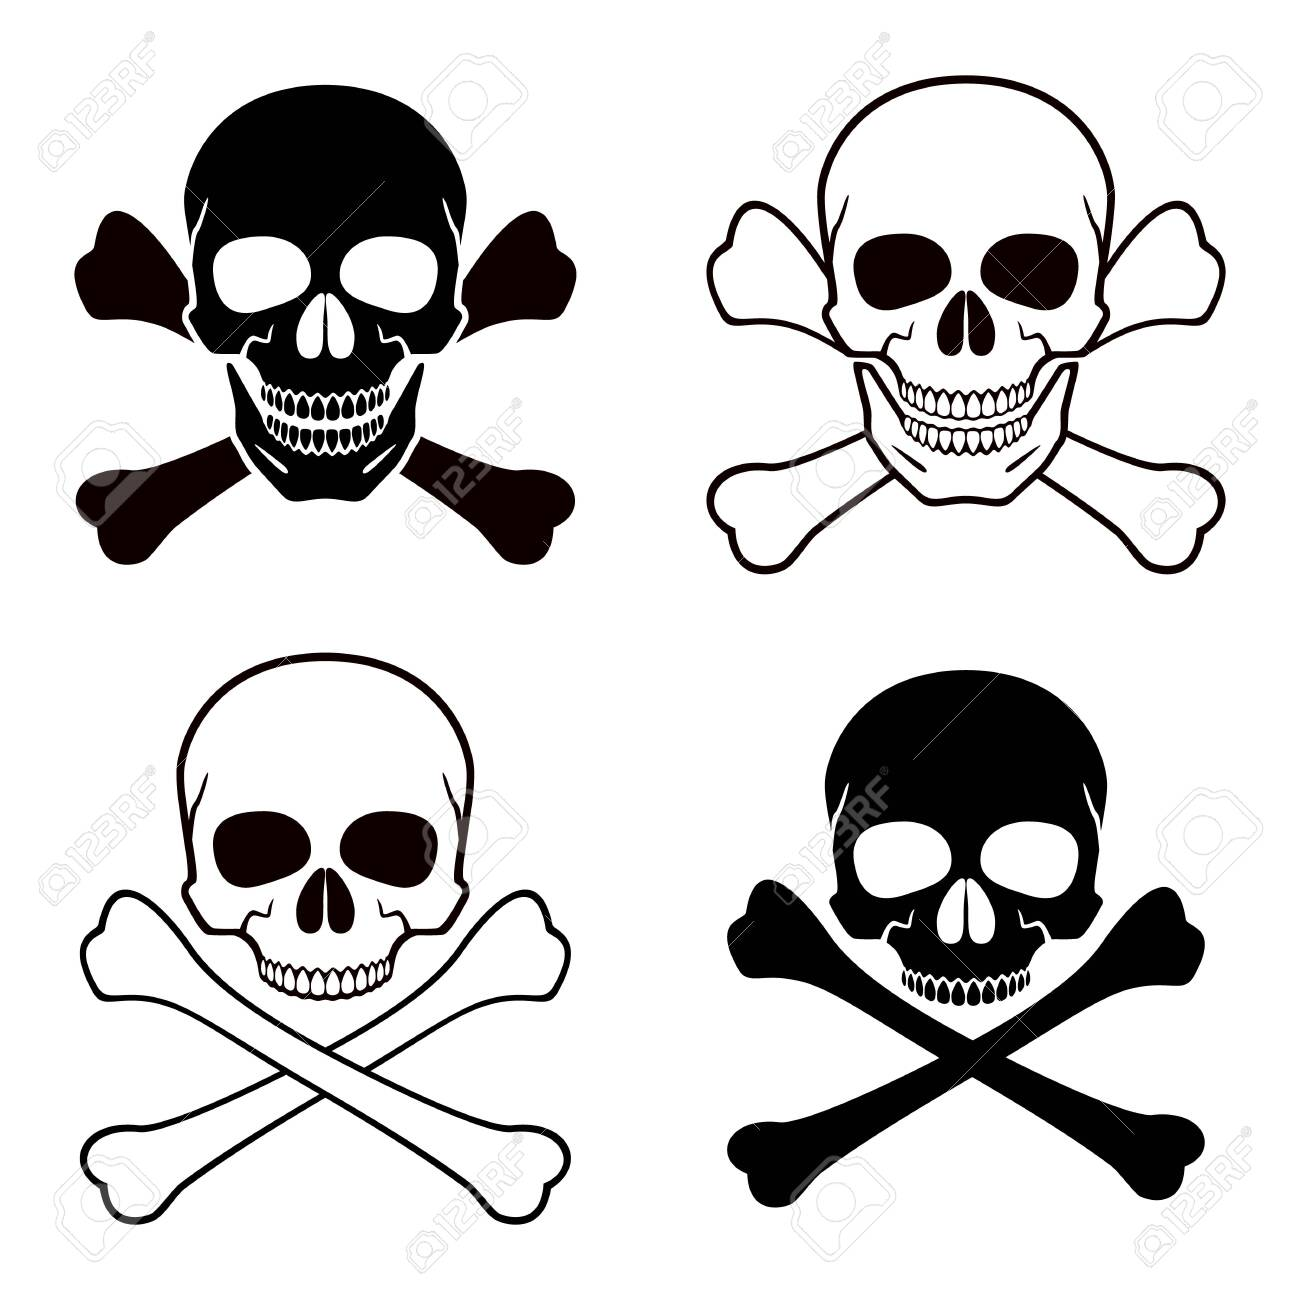 Human Skull Crossbones Symbol Of Danger Abstract Concept Royalty Free Cliparts Vectors And Stock Illustration Image 135460511